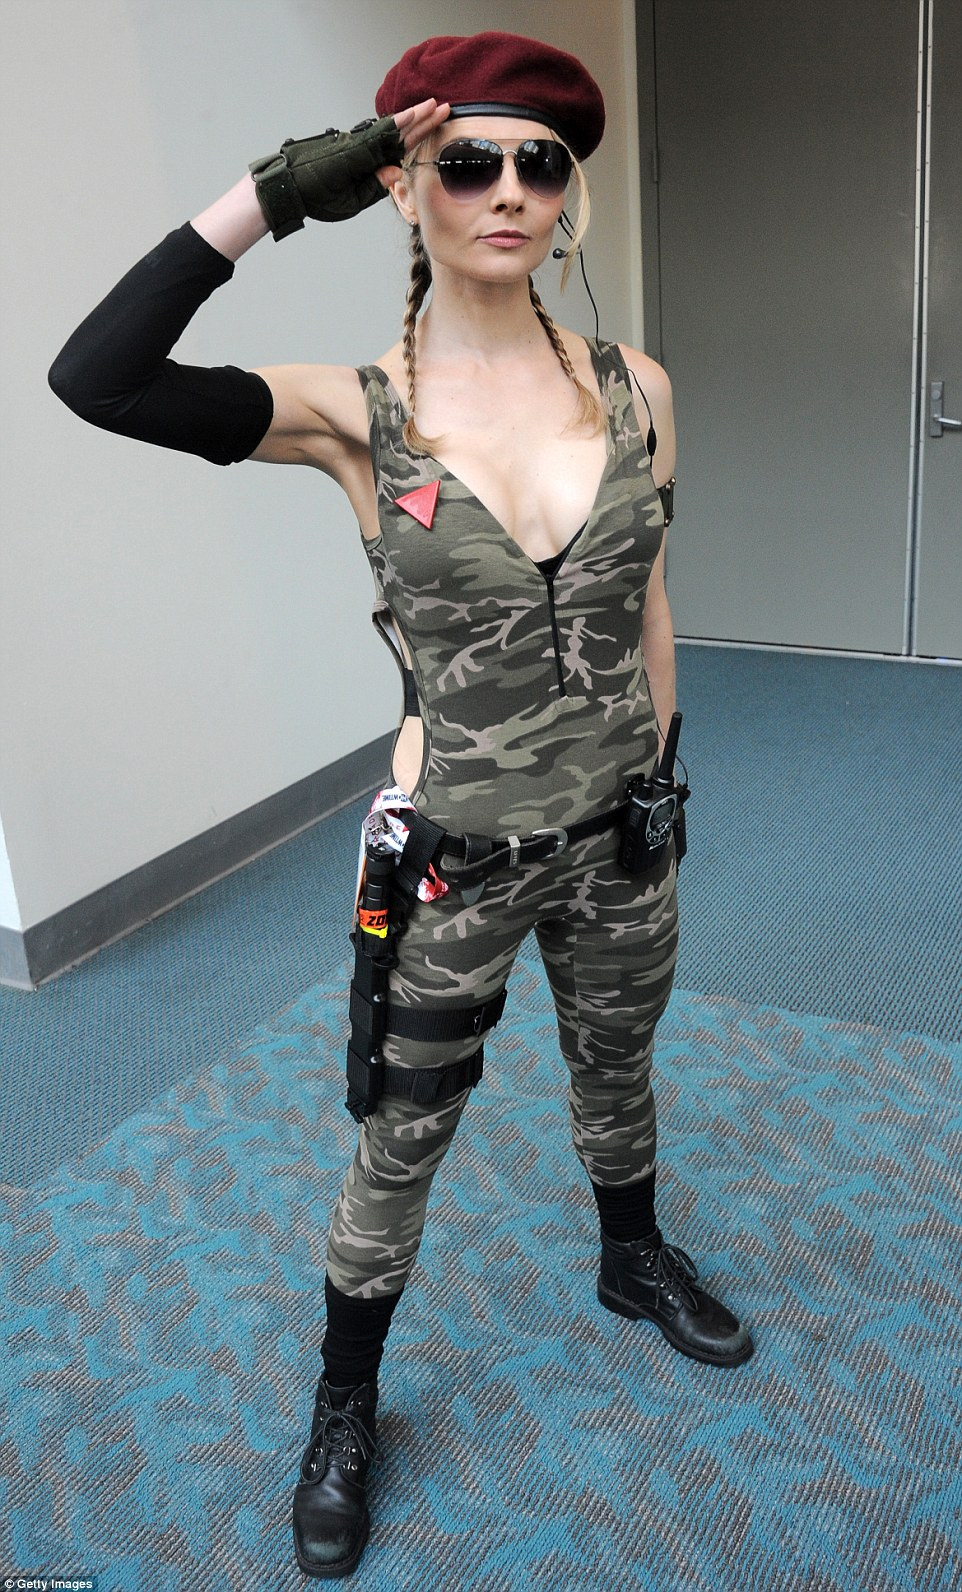 2A654BE400000578-3157610-Attention_A_cosplayer_portrays_a_G_I_Joe_character_during_Comic_-a-73_1436643034785